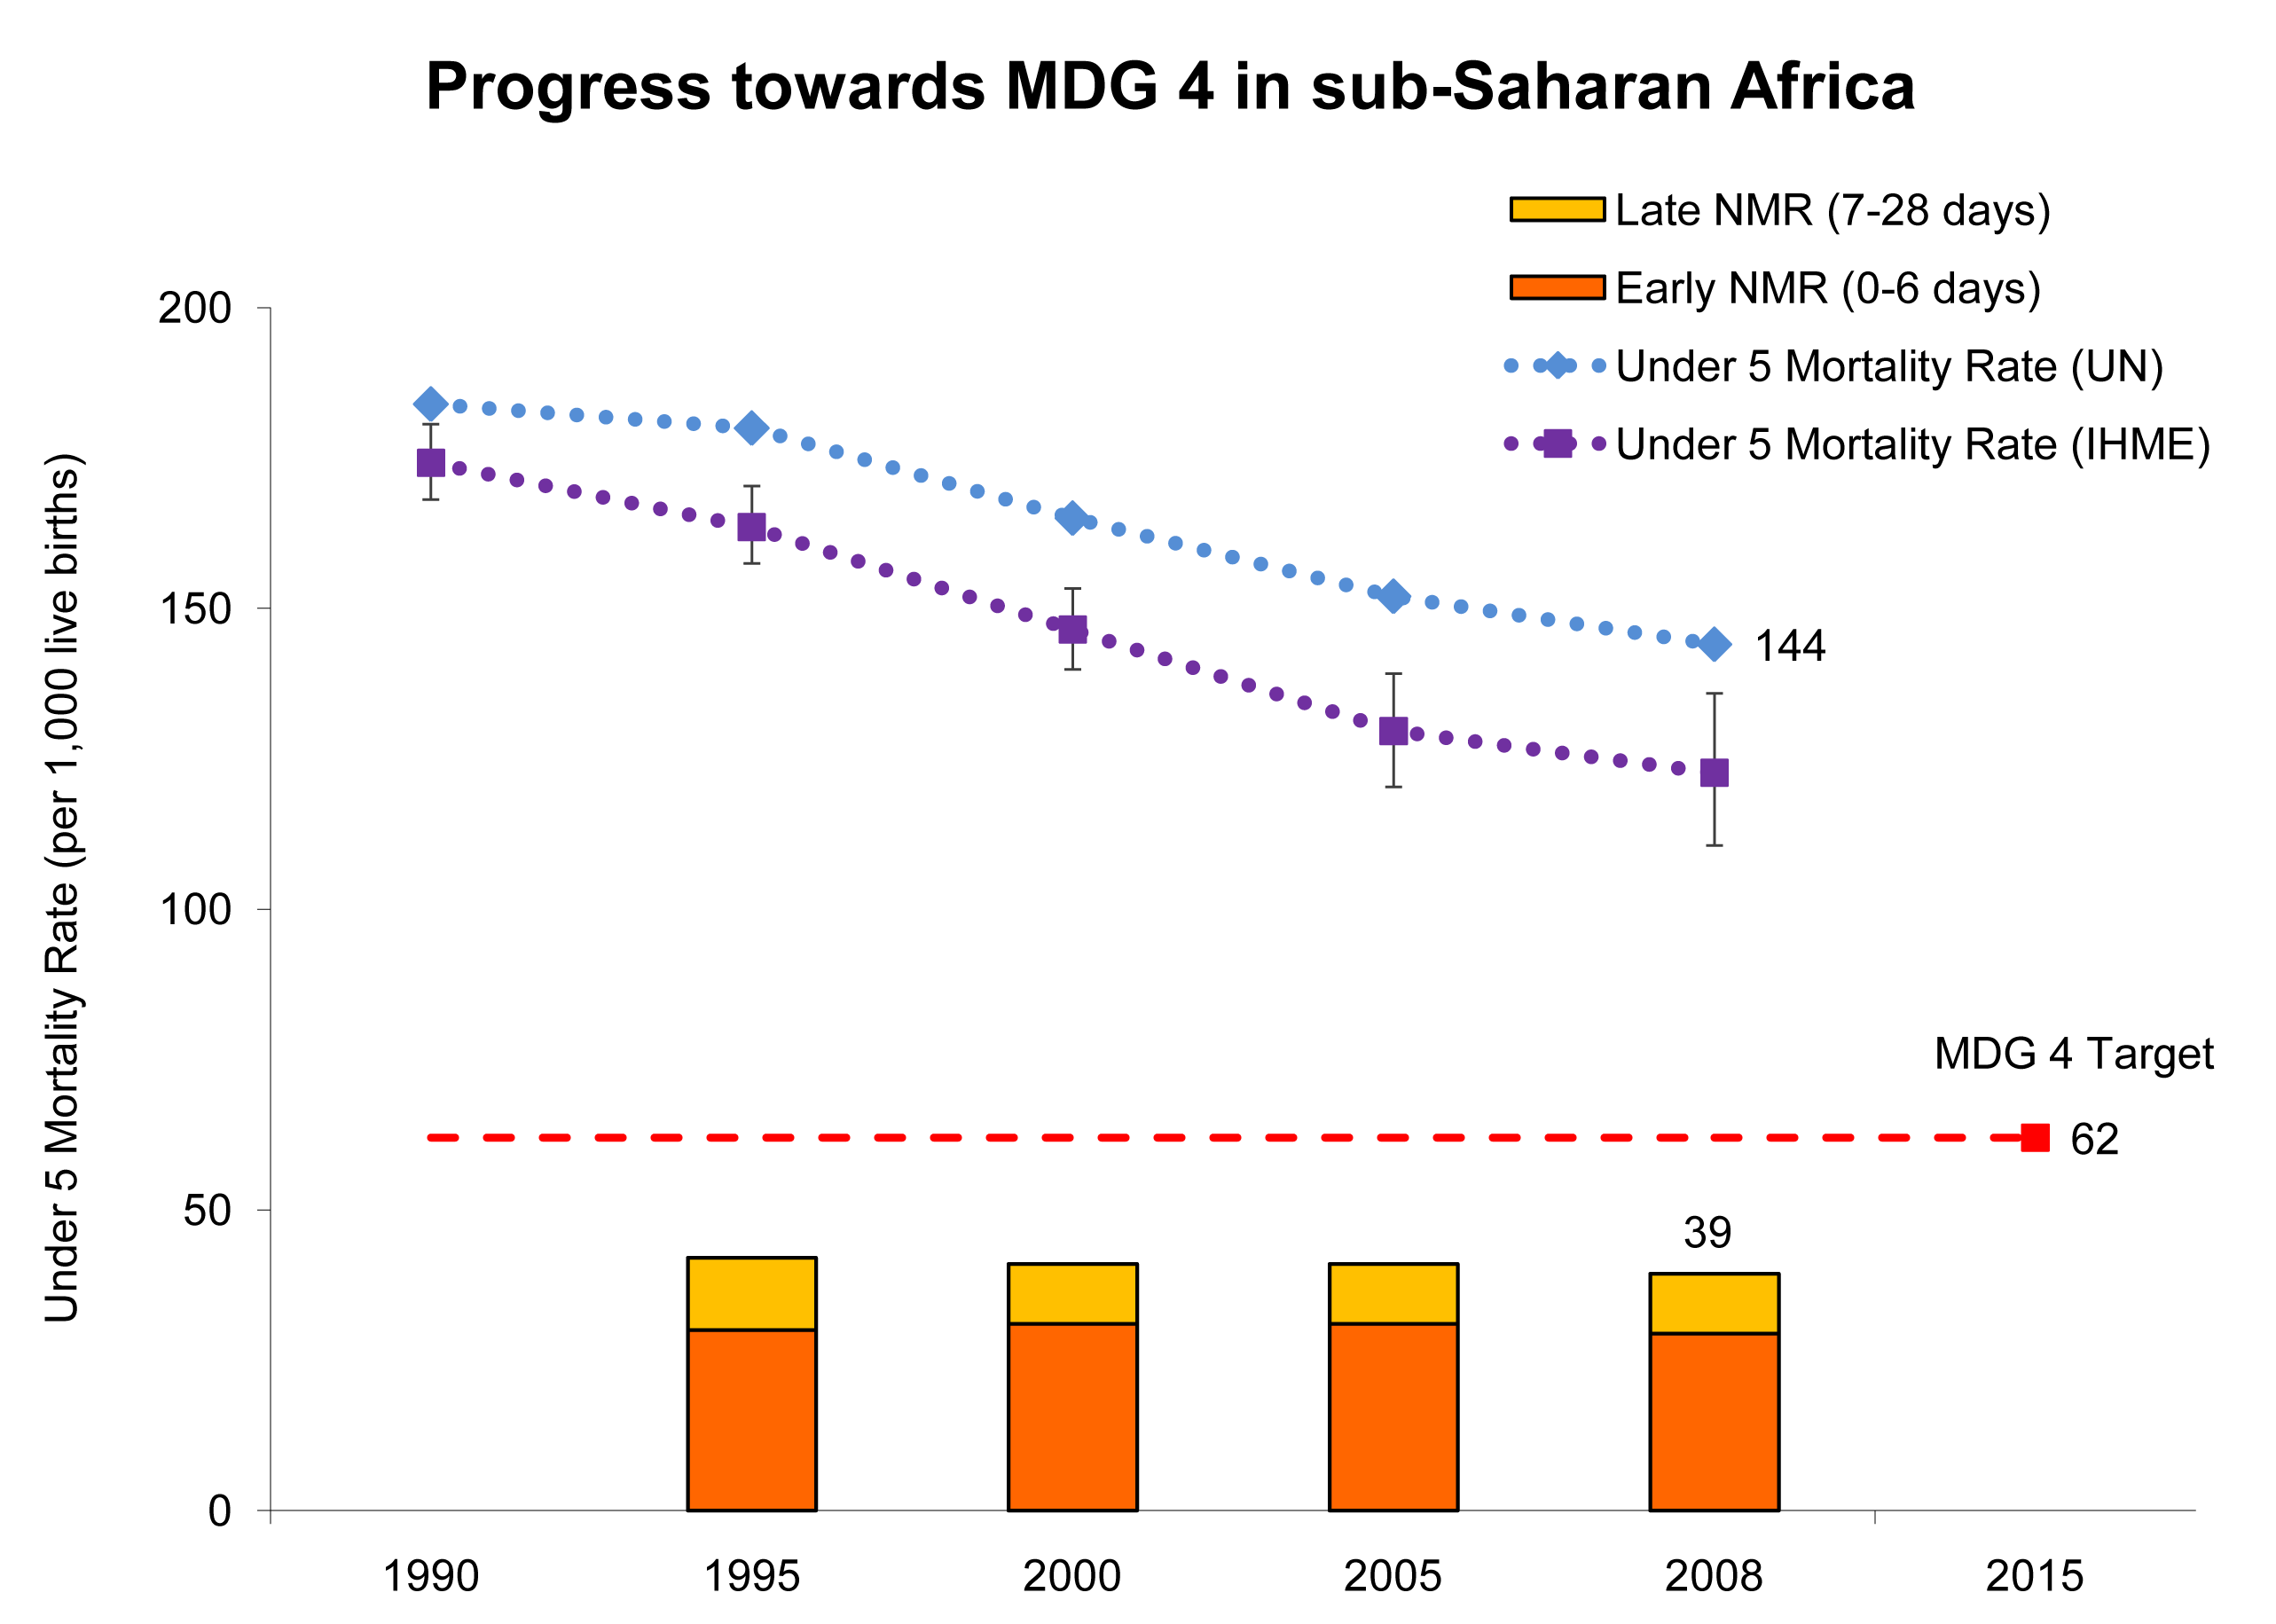 Progress towards Millennium Development Goal 4 for newborn and child survival in sub-Saharan Africa.